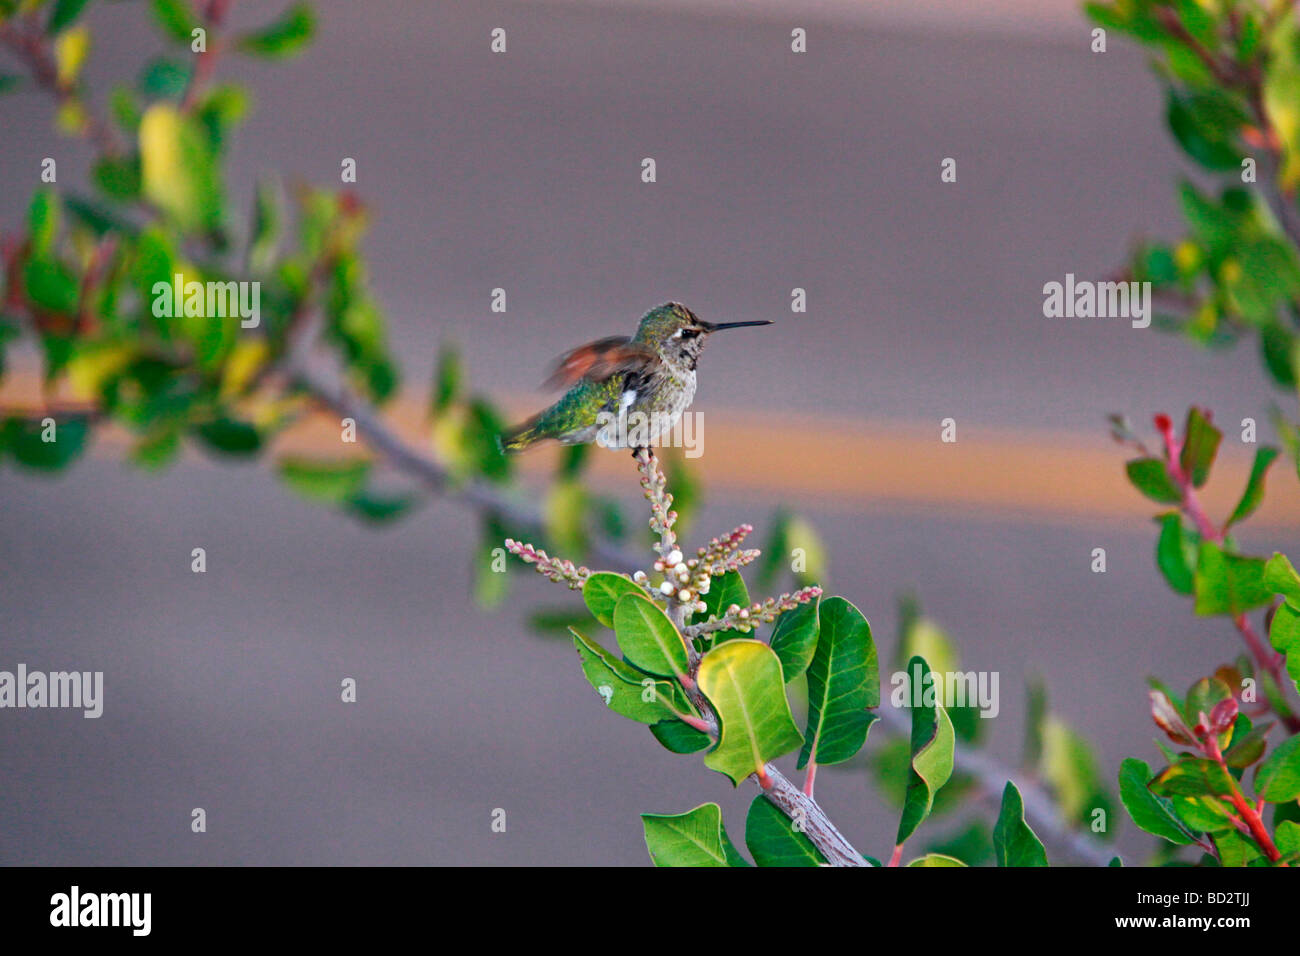 Cute little humming bird perched on the tree top. - Stock Image